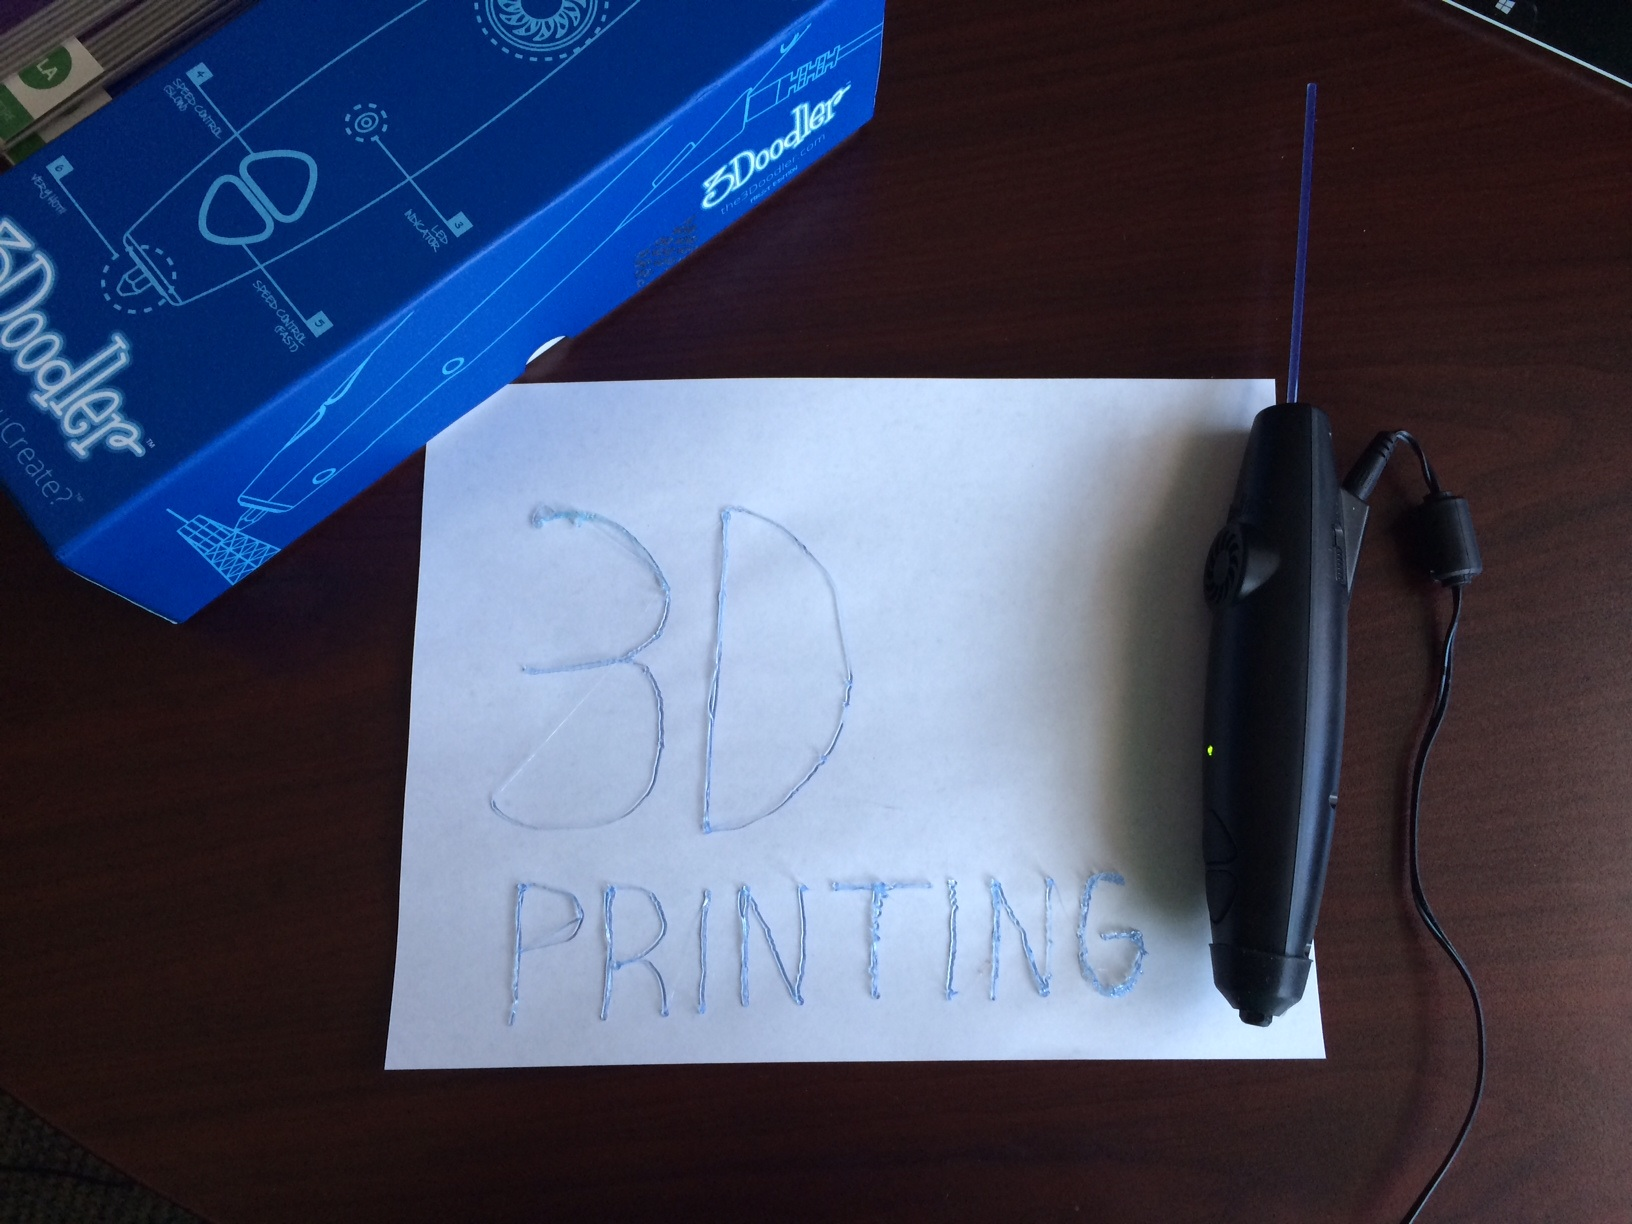 New 3D printing technology revealed at CES 2014 conference